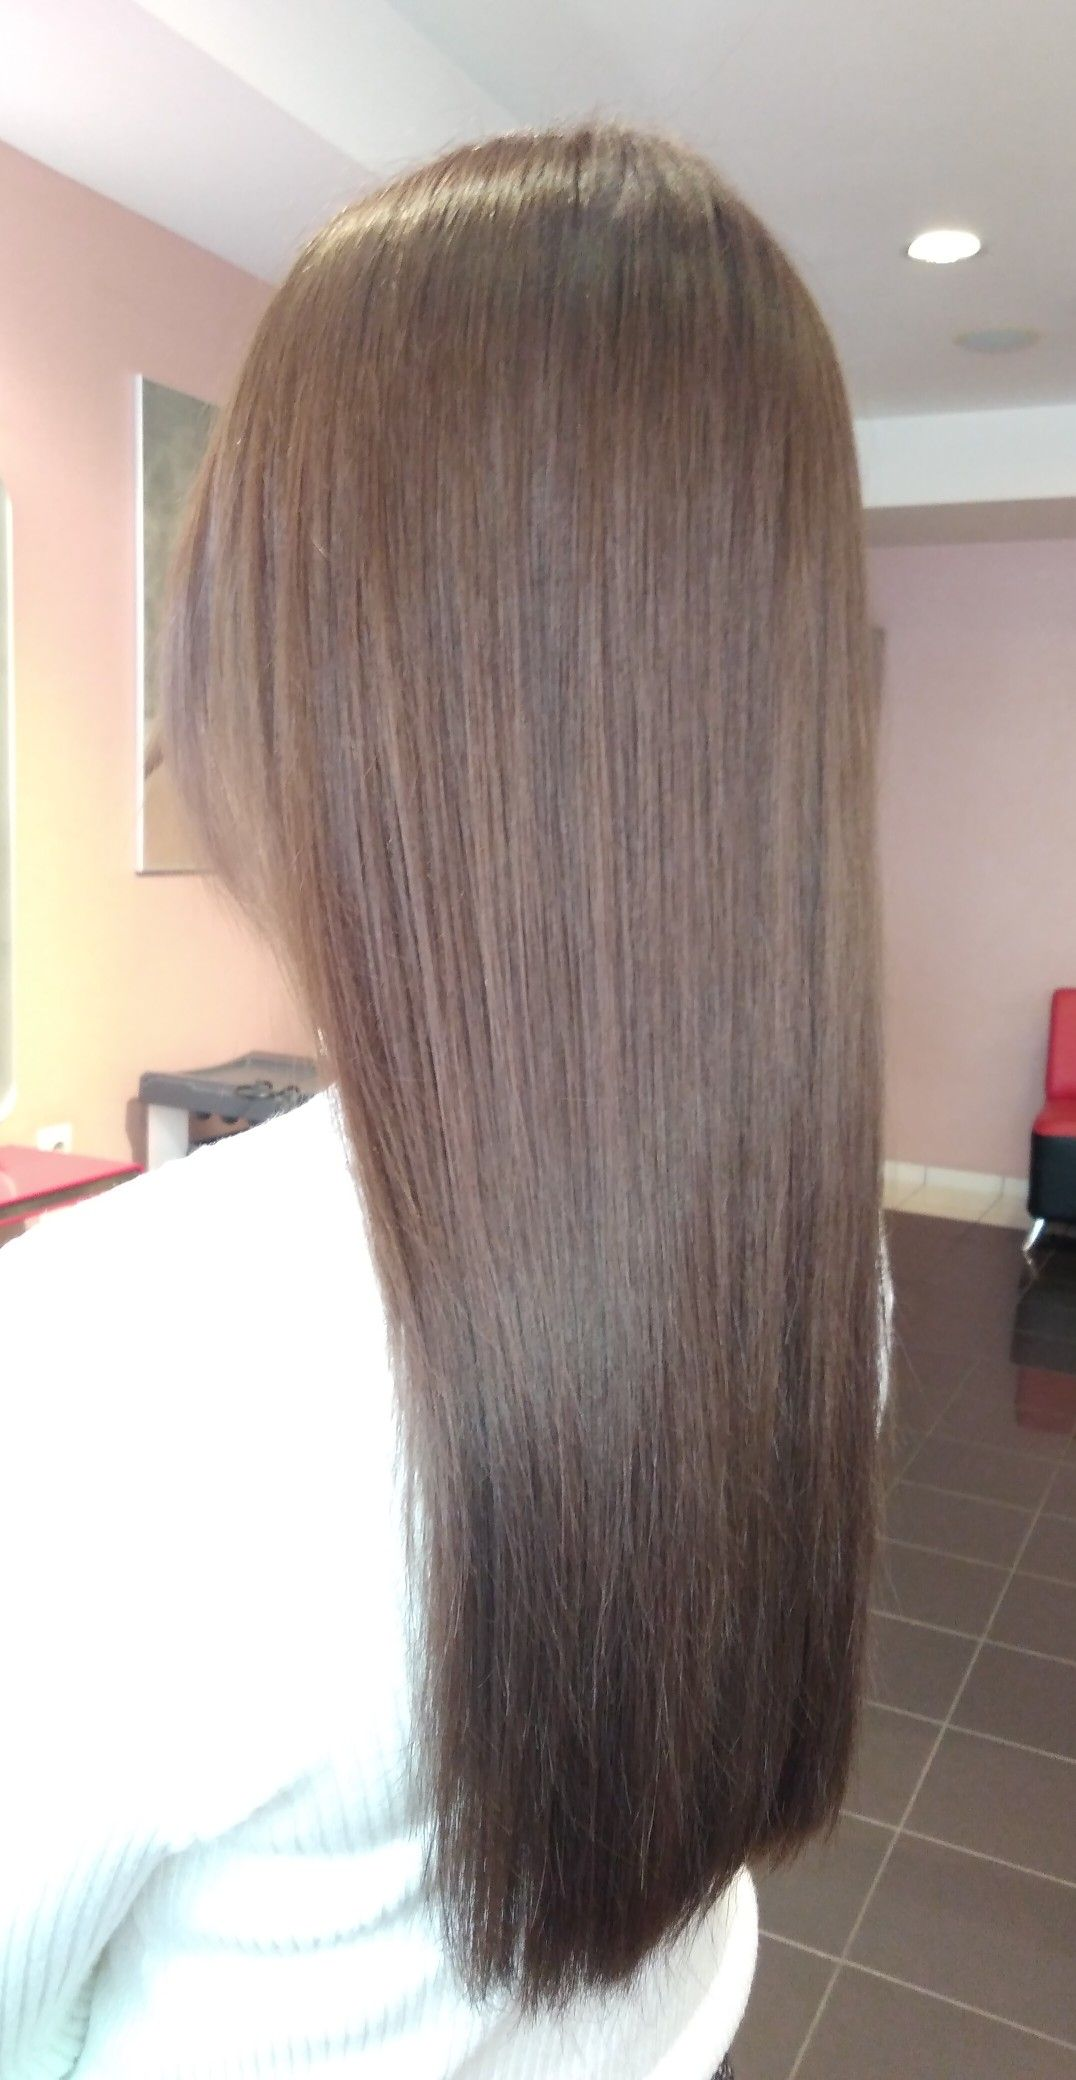 Dunkelblond Farbpalette Illumina Color 6 16 6 19 1 9 Мои работы In 2019 Brown Hair